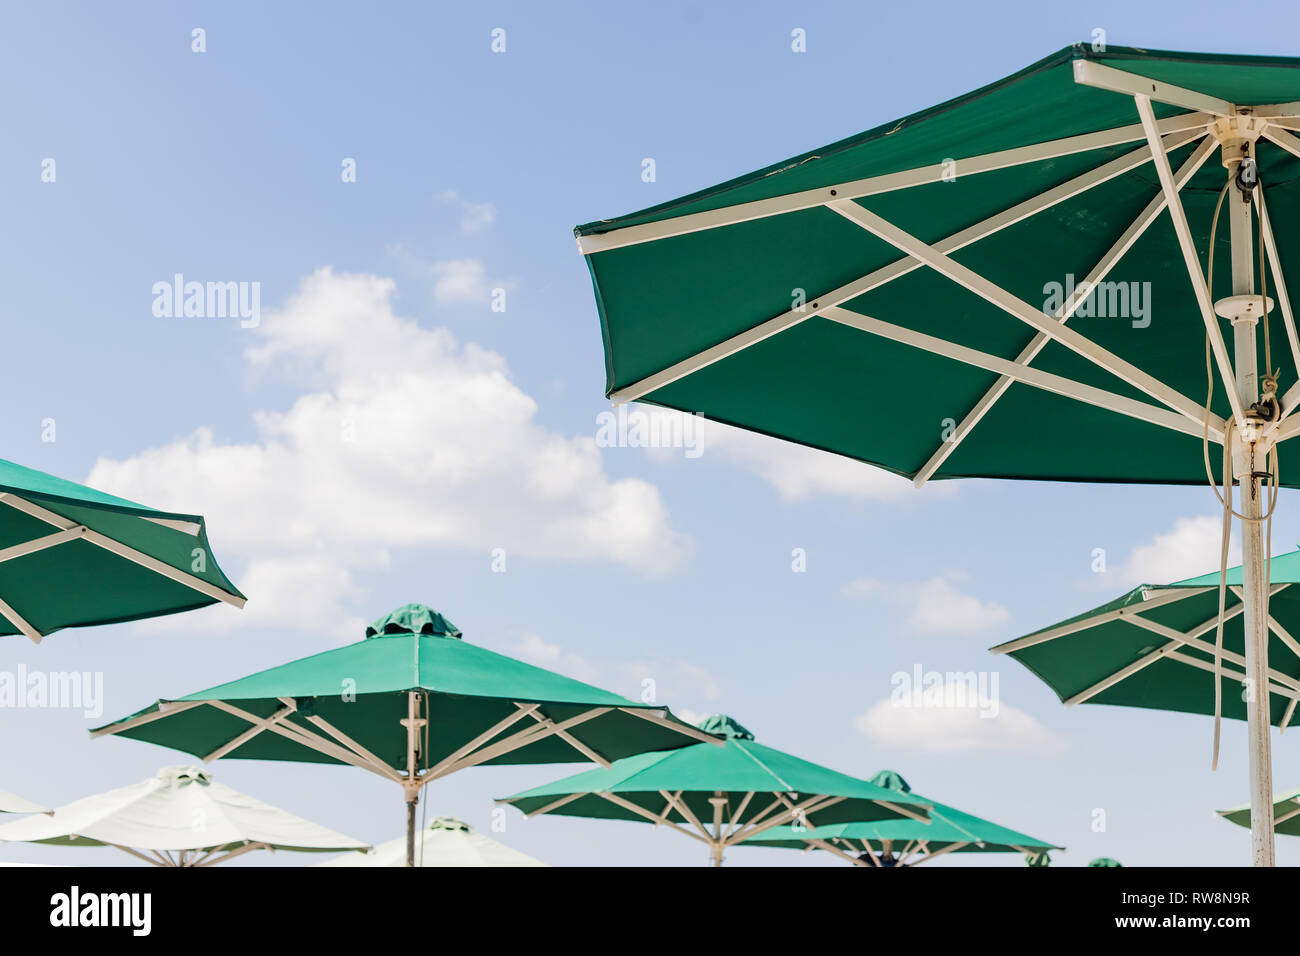 Sun Green Open Umbrella Comfortable Rest By The Ocean With Personal